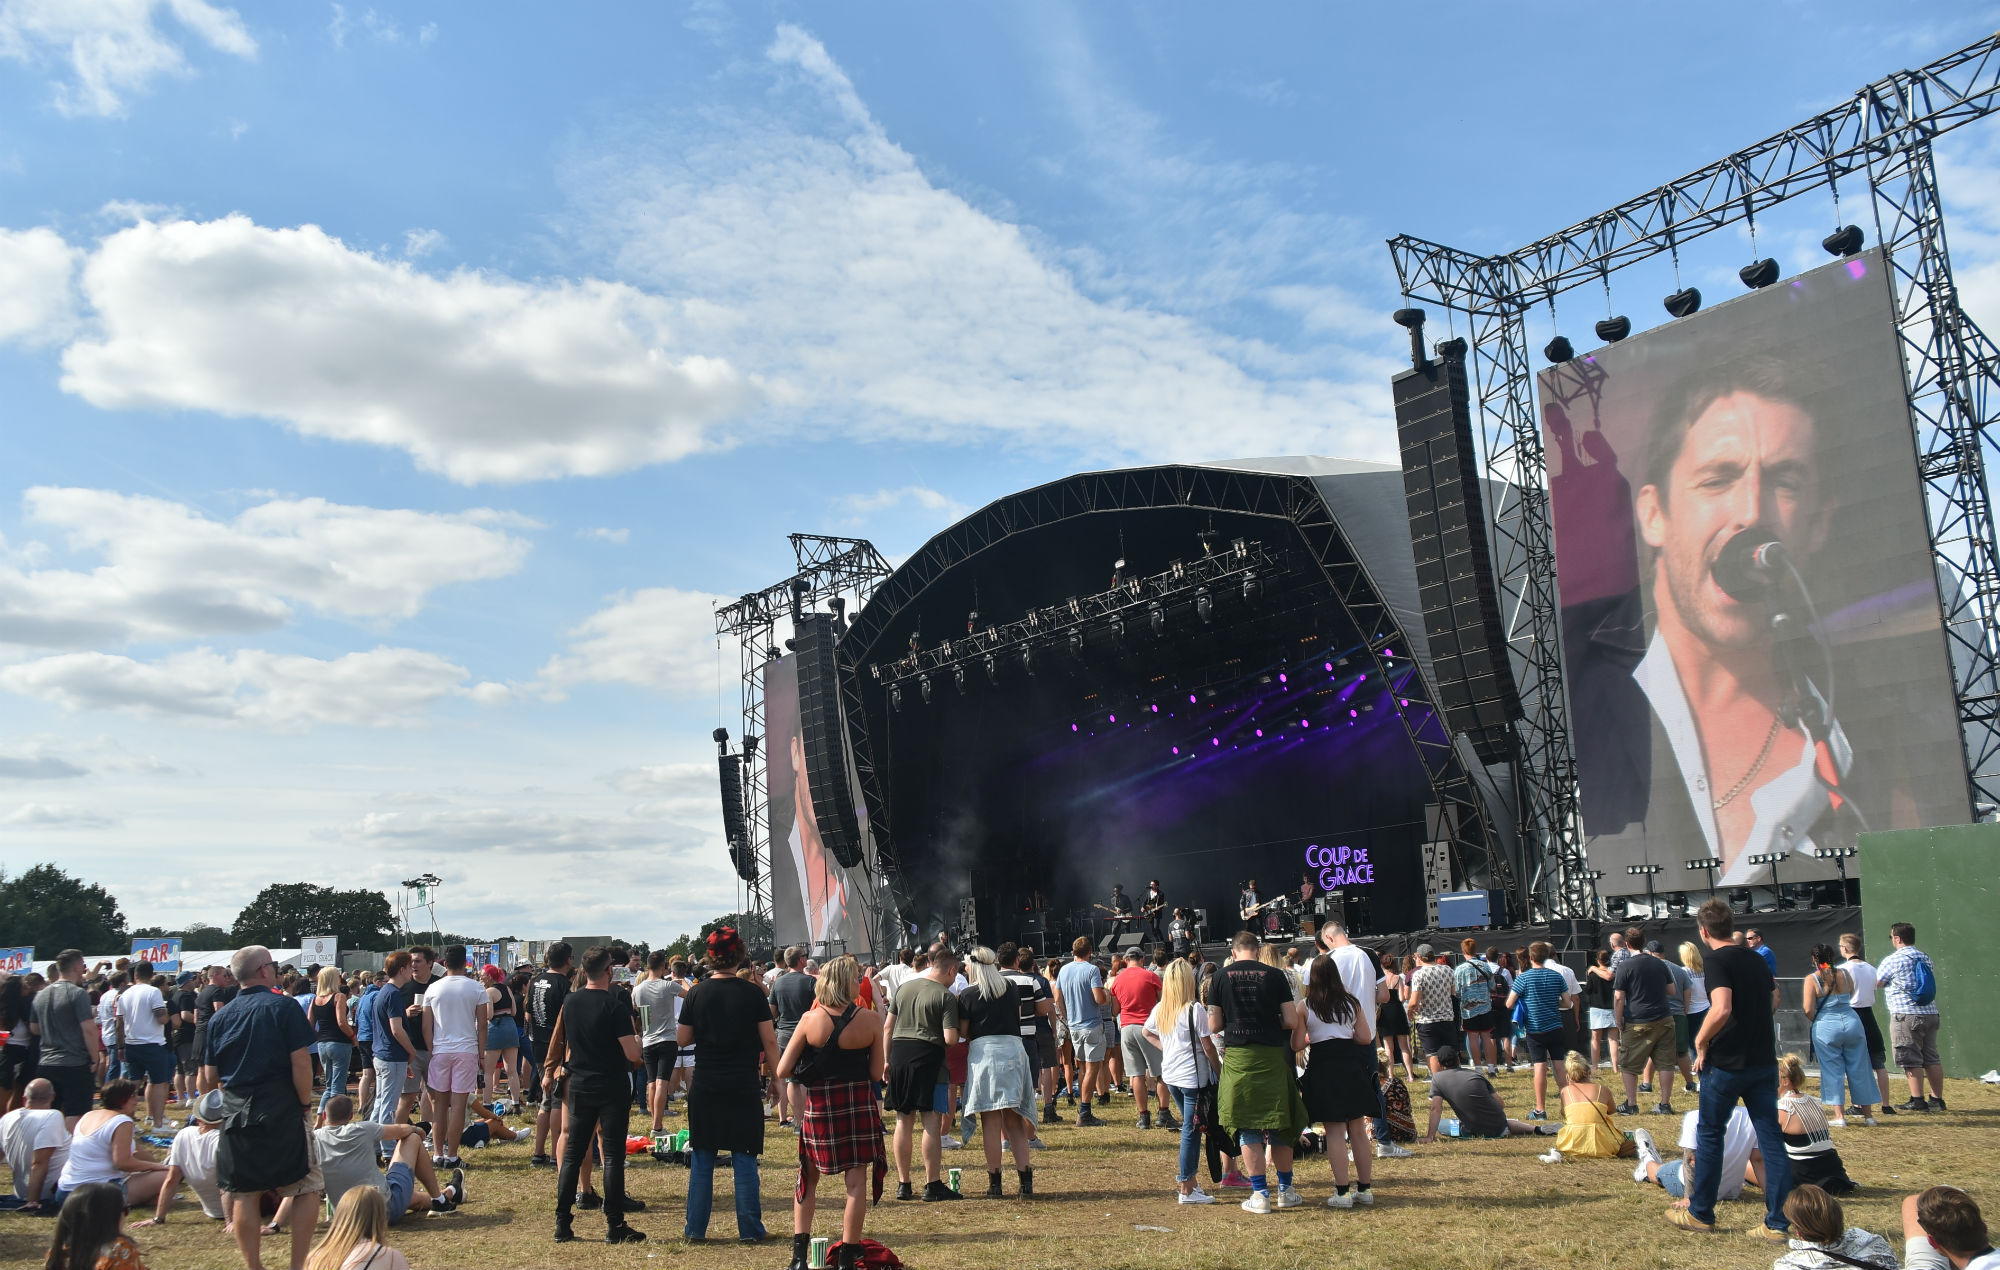 V Festival Replacement Rize Is Cancelled For 2019